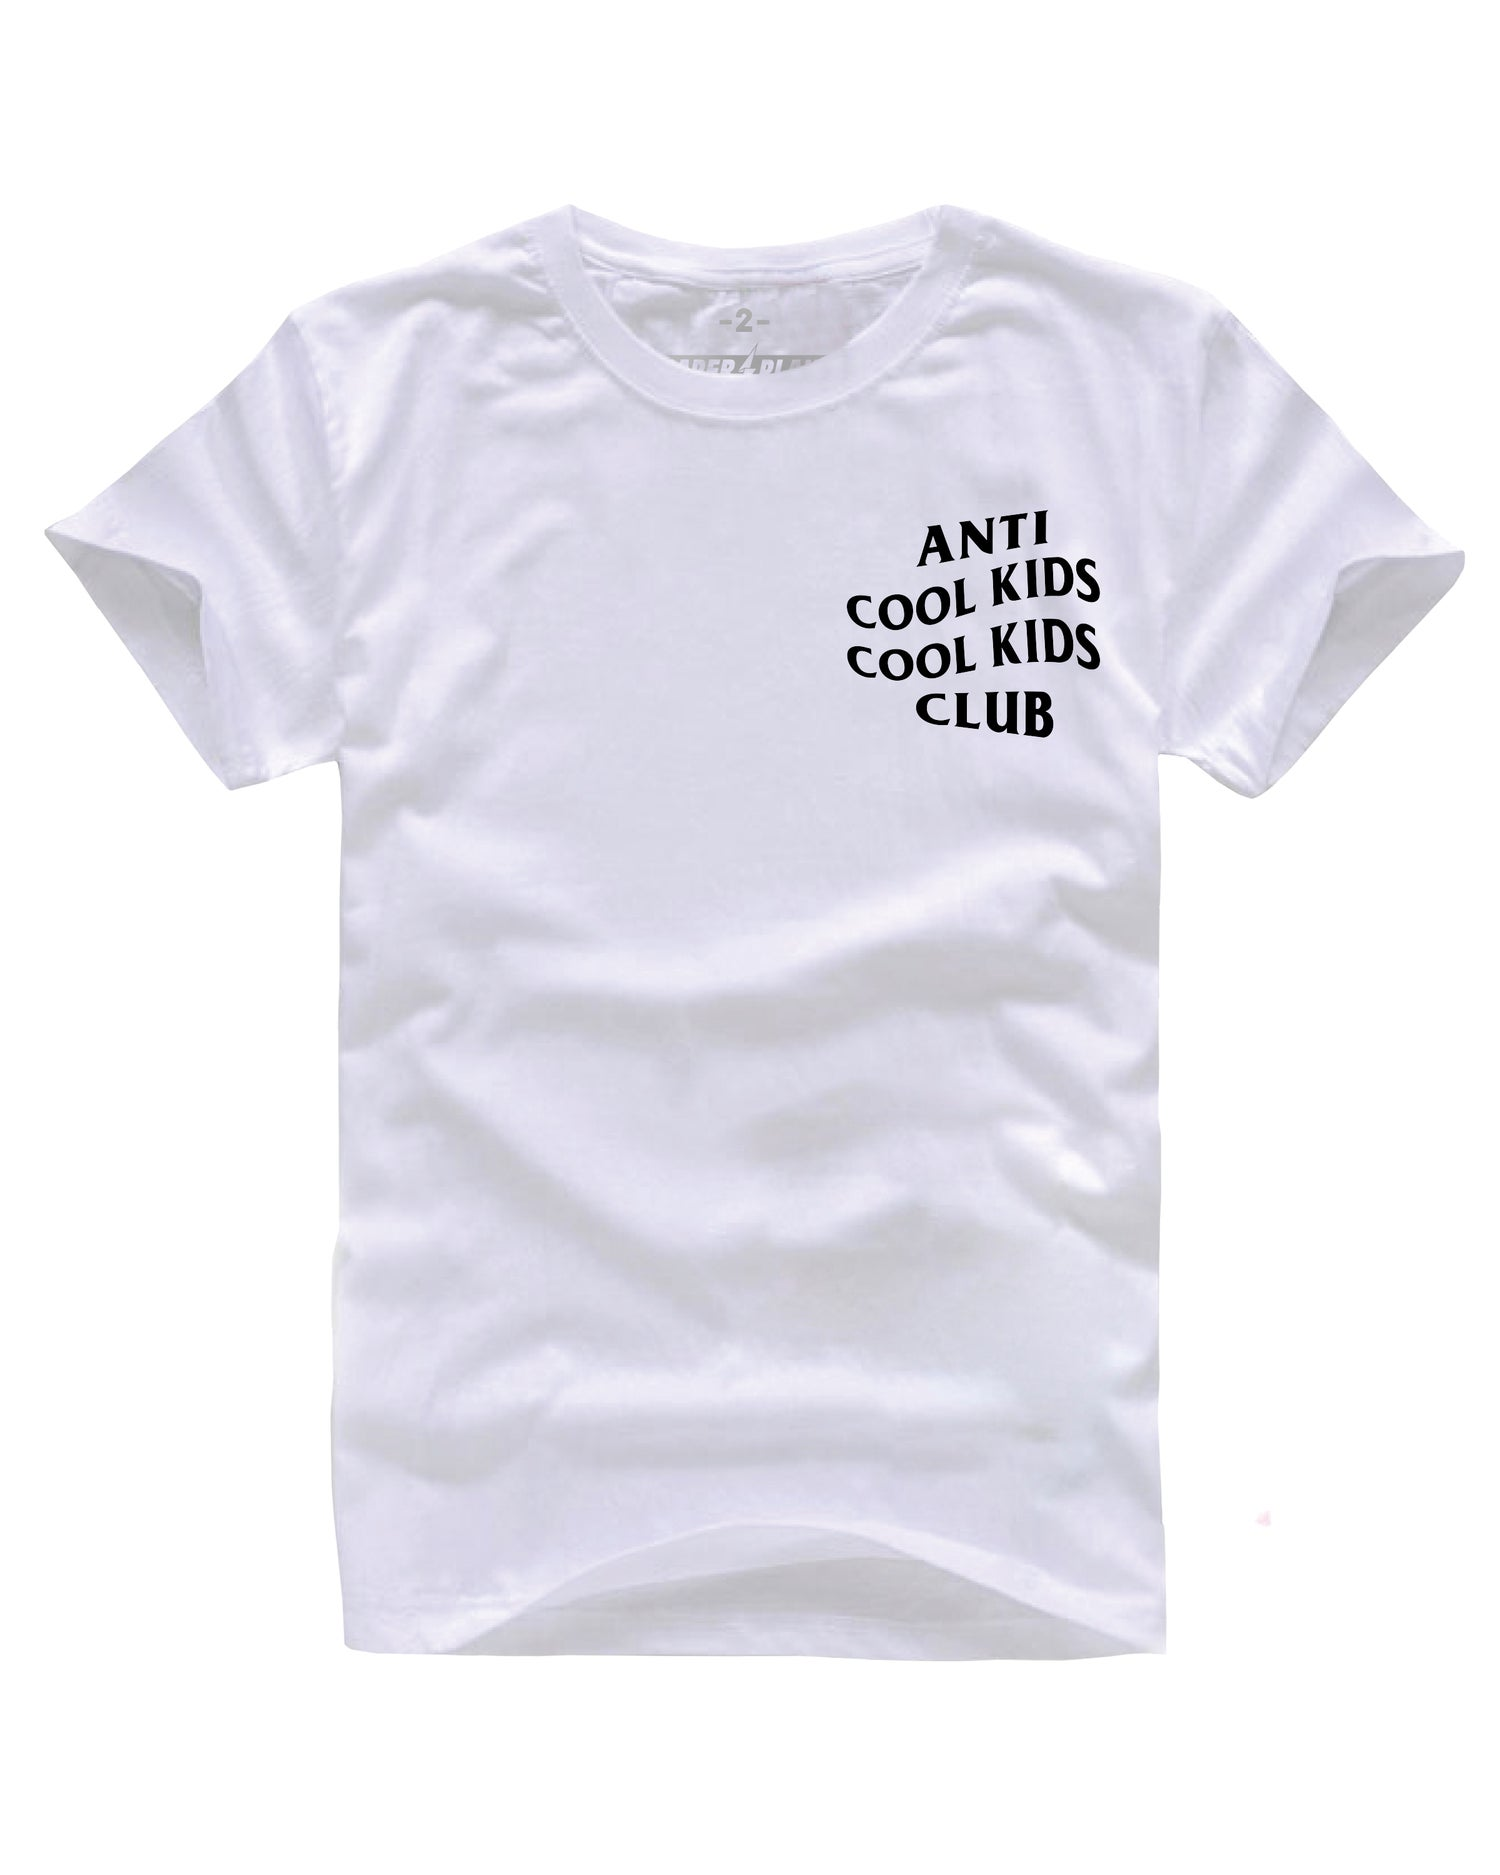 Image of ANTI COOL KIDS WHITE/BLACK